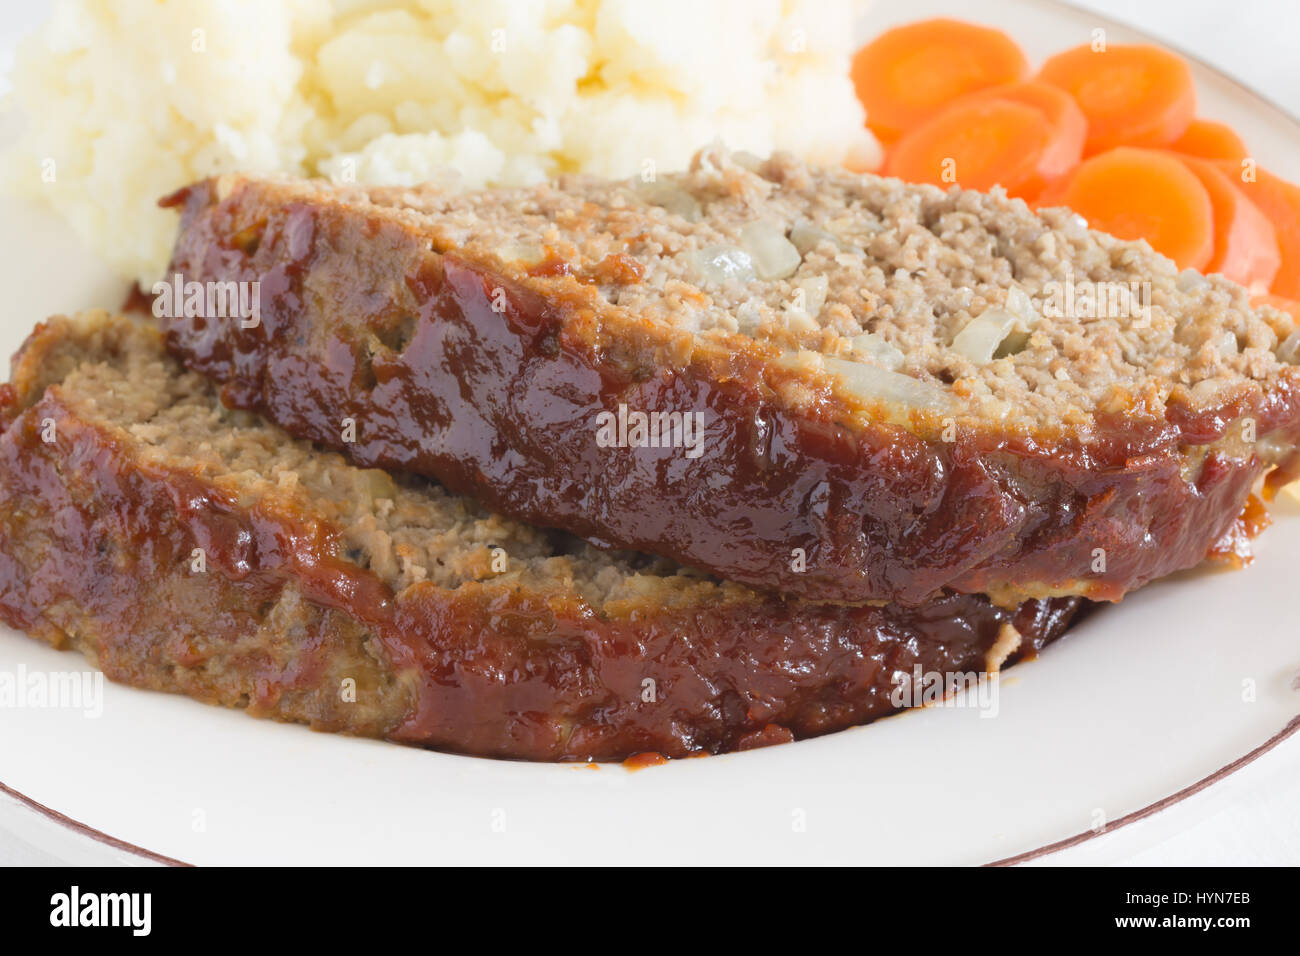 meatloaf glaze ketchup brown sugar mustard